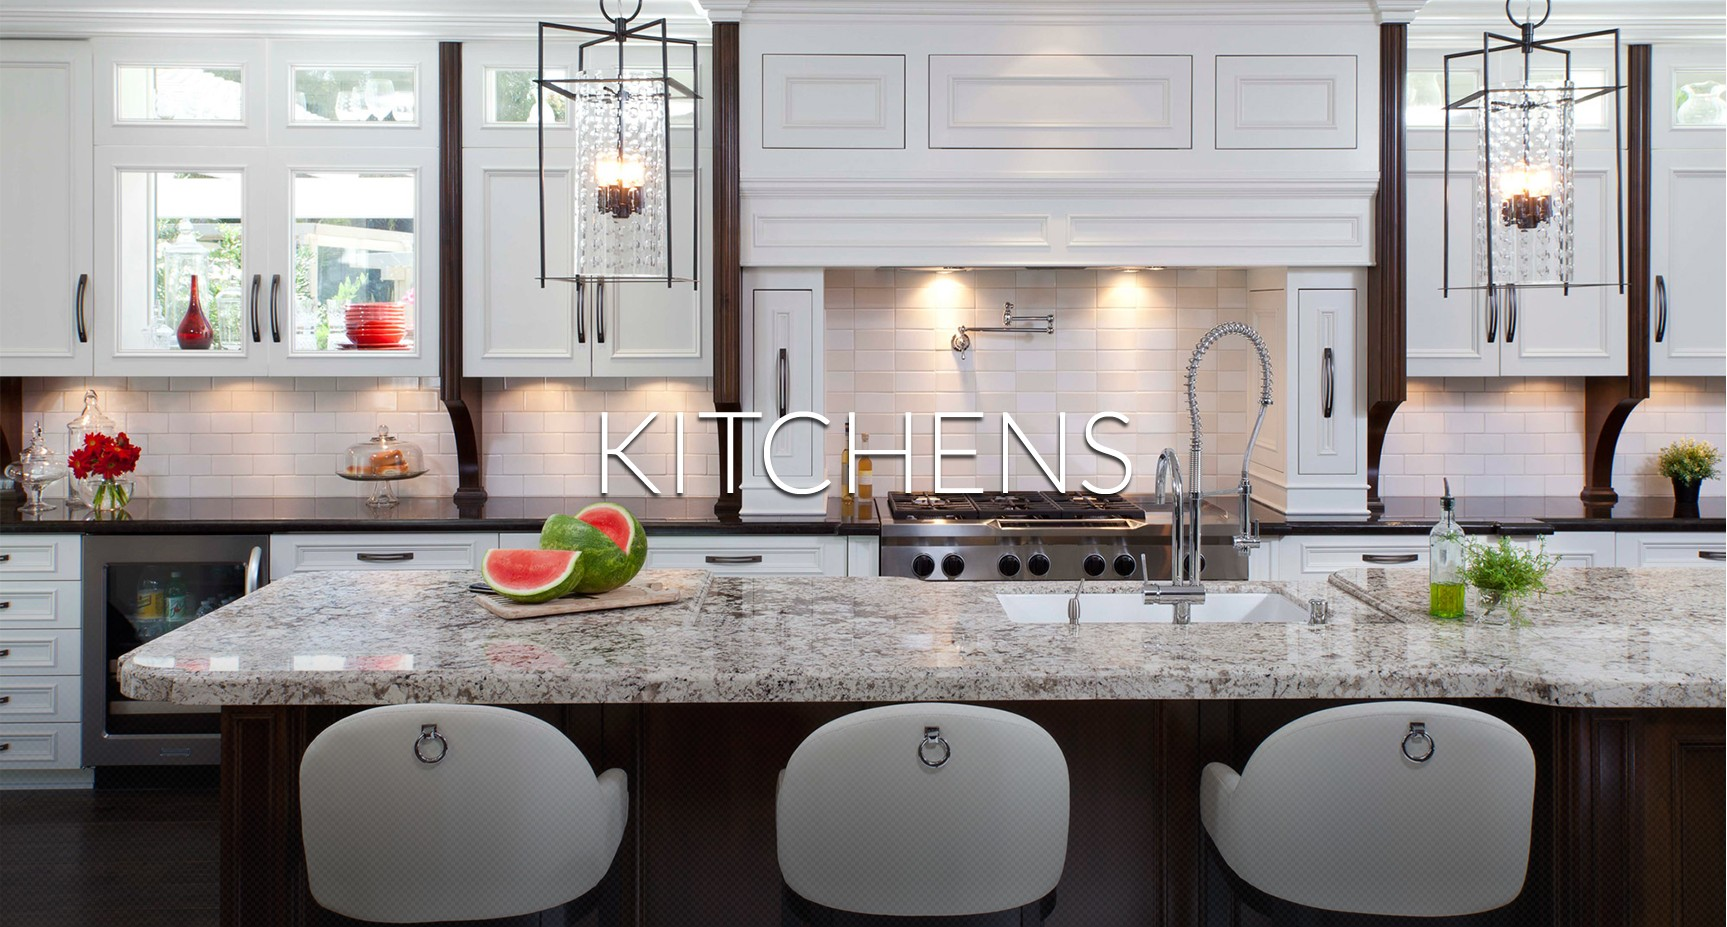 Kitchen Design San Diego Inspiration San Diego Interior Designers Kitchen Bath Living Spaces Inspiration Design